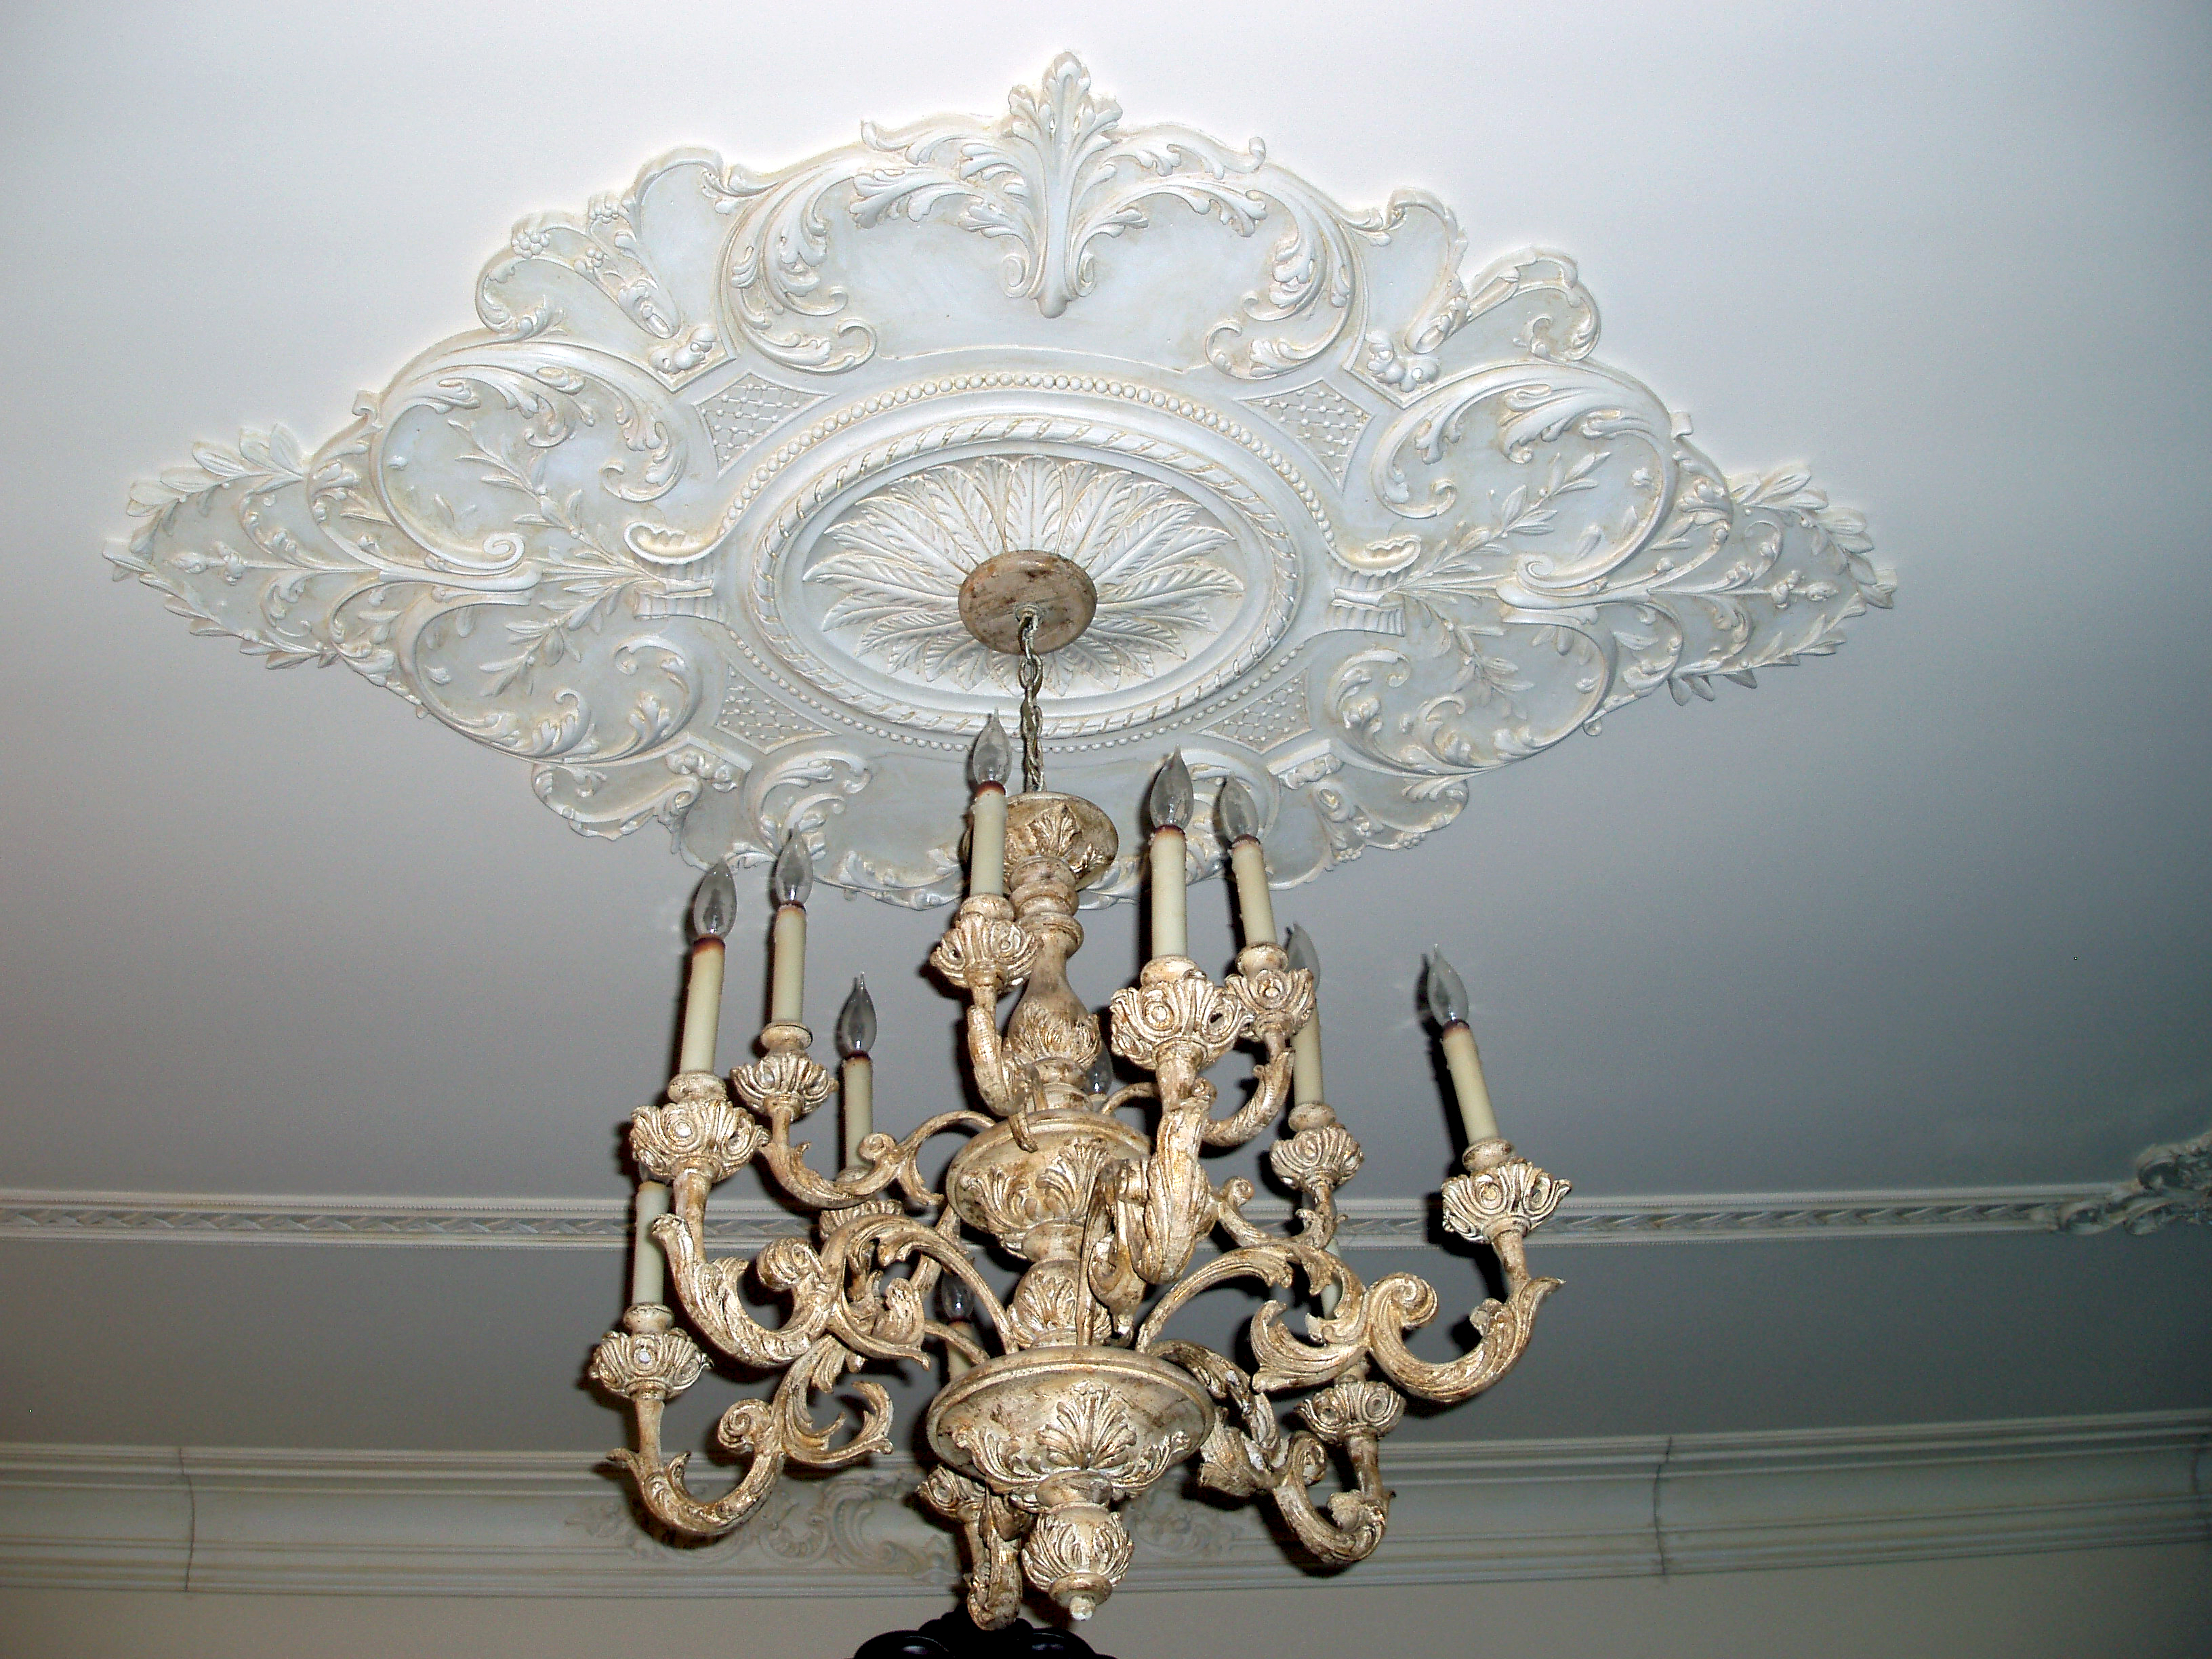 Decorative Medallion Saddle River NJ